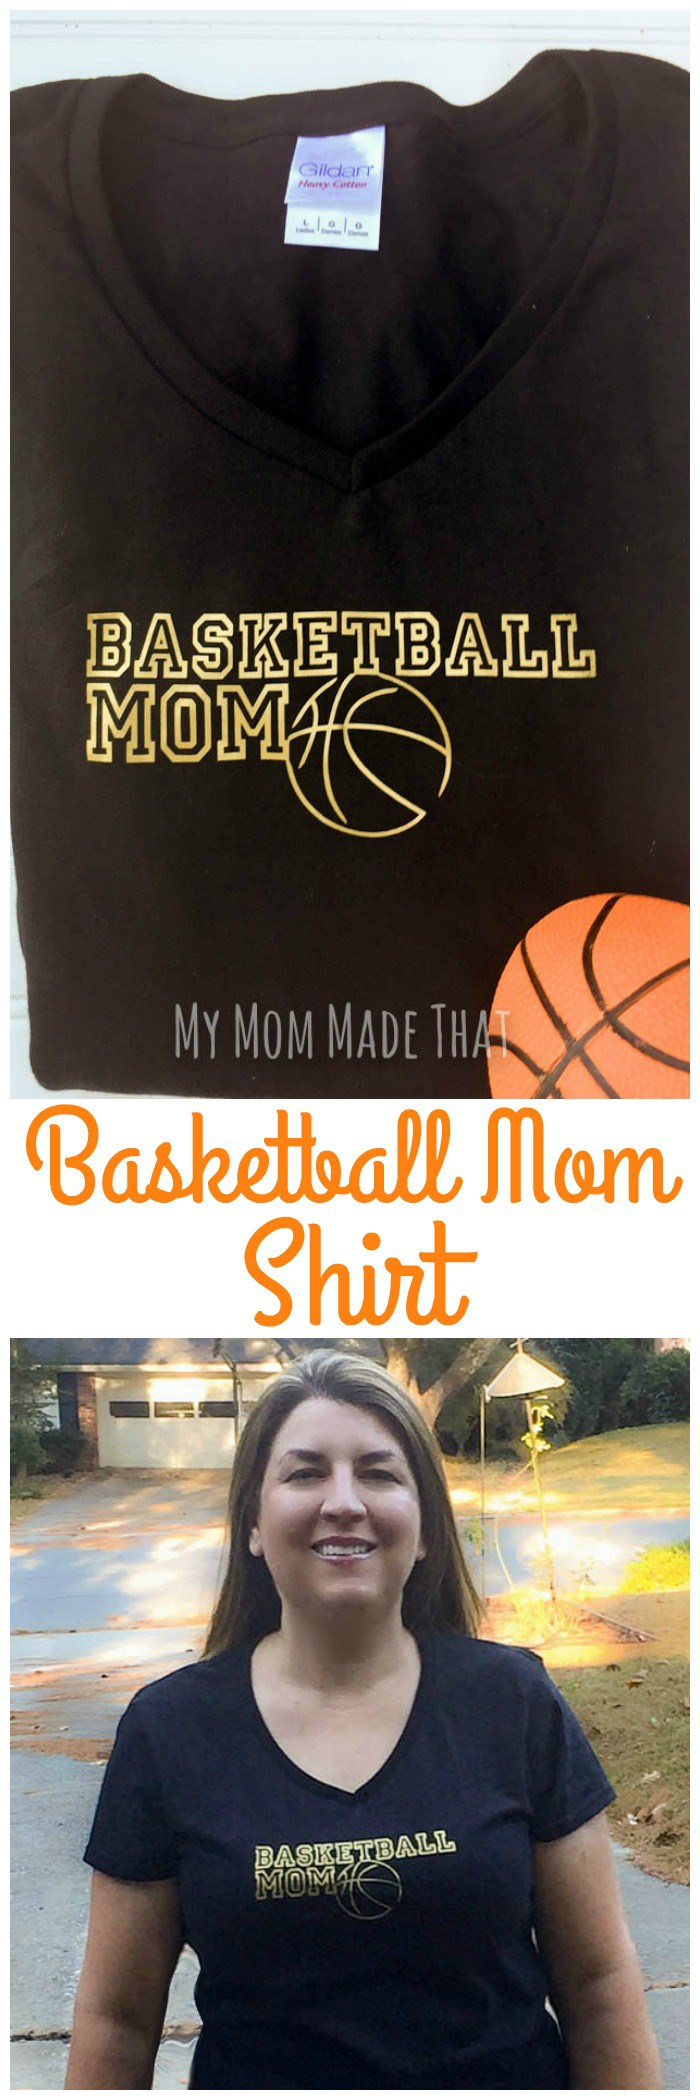 Here's an easy to make Basketball Mom Shirt that is a simple DIY project with Iron-On Vinyl. It's a perfect graphic tee to make with your Cricut machine that any mother can wear to their child's basketball games and tournaments.